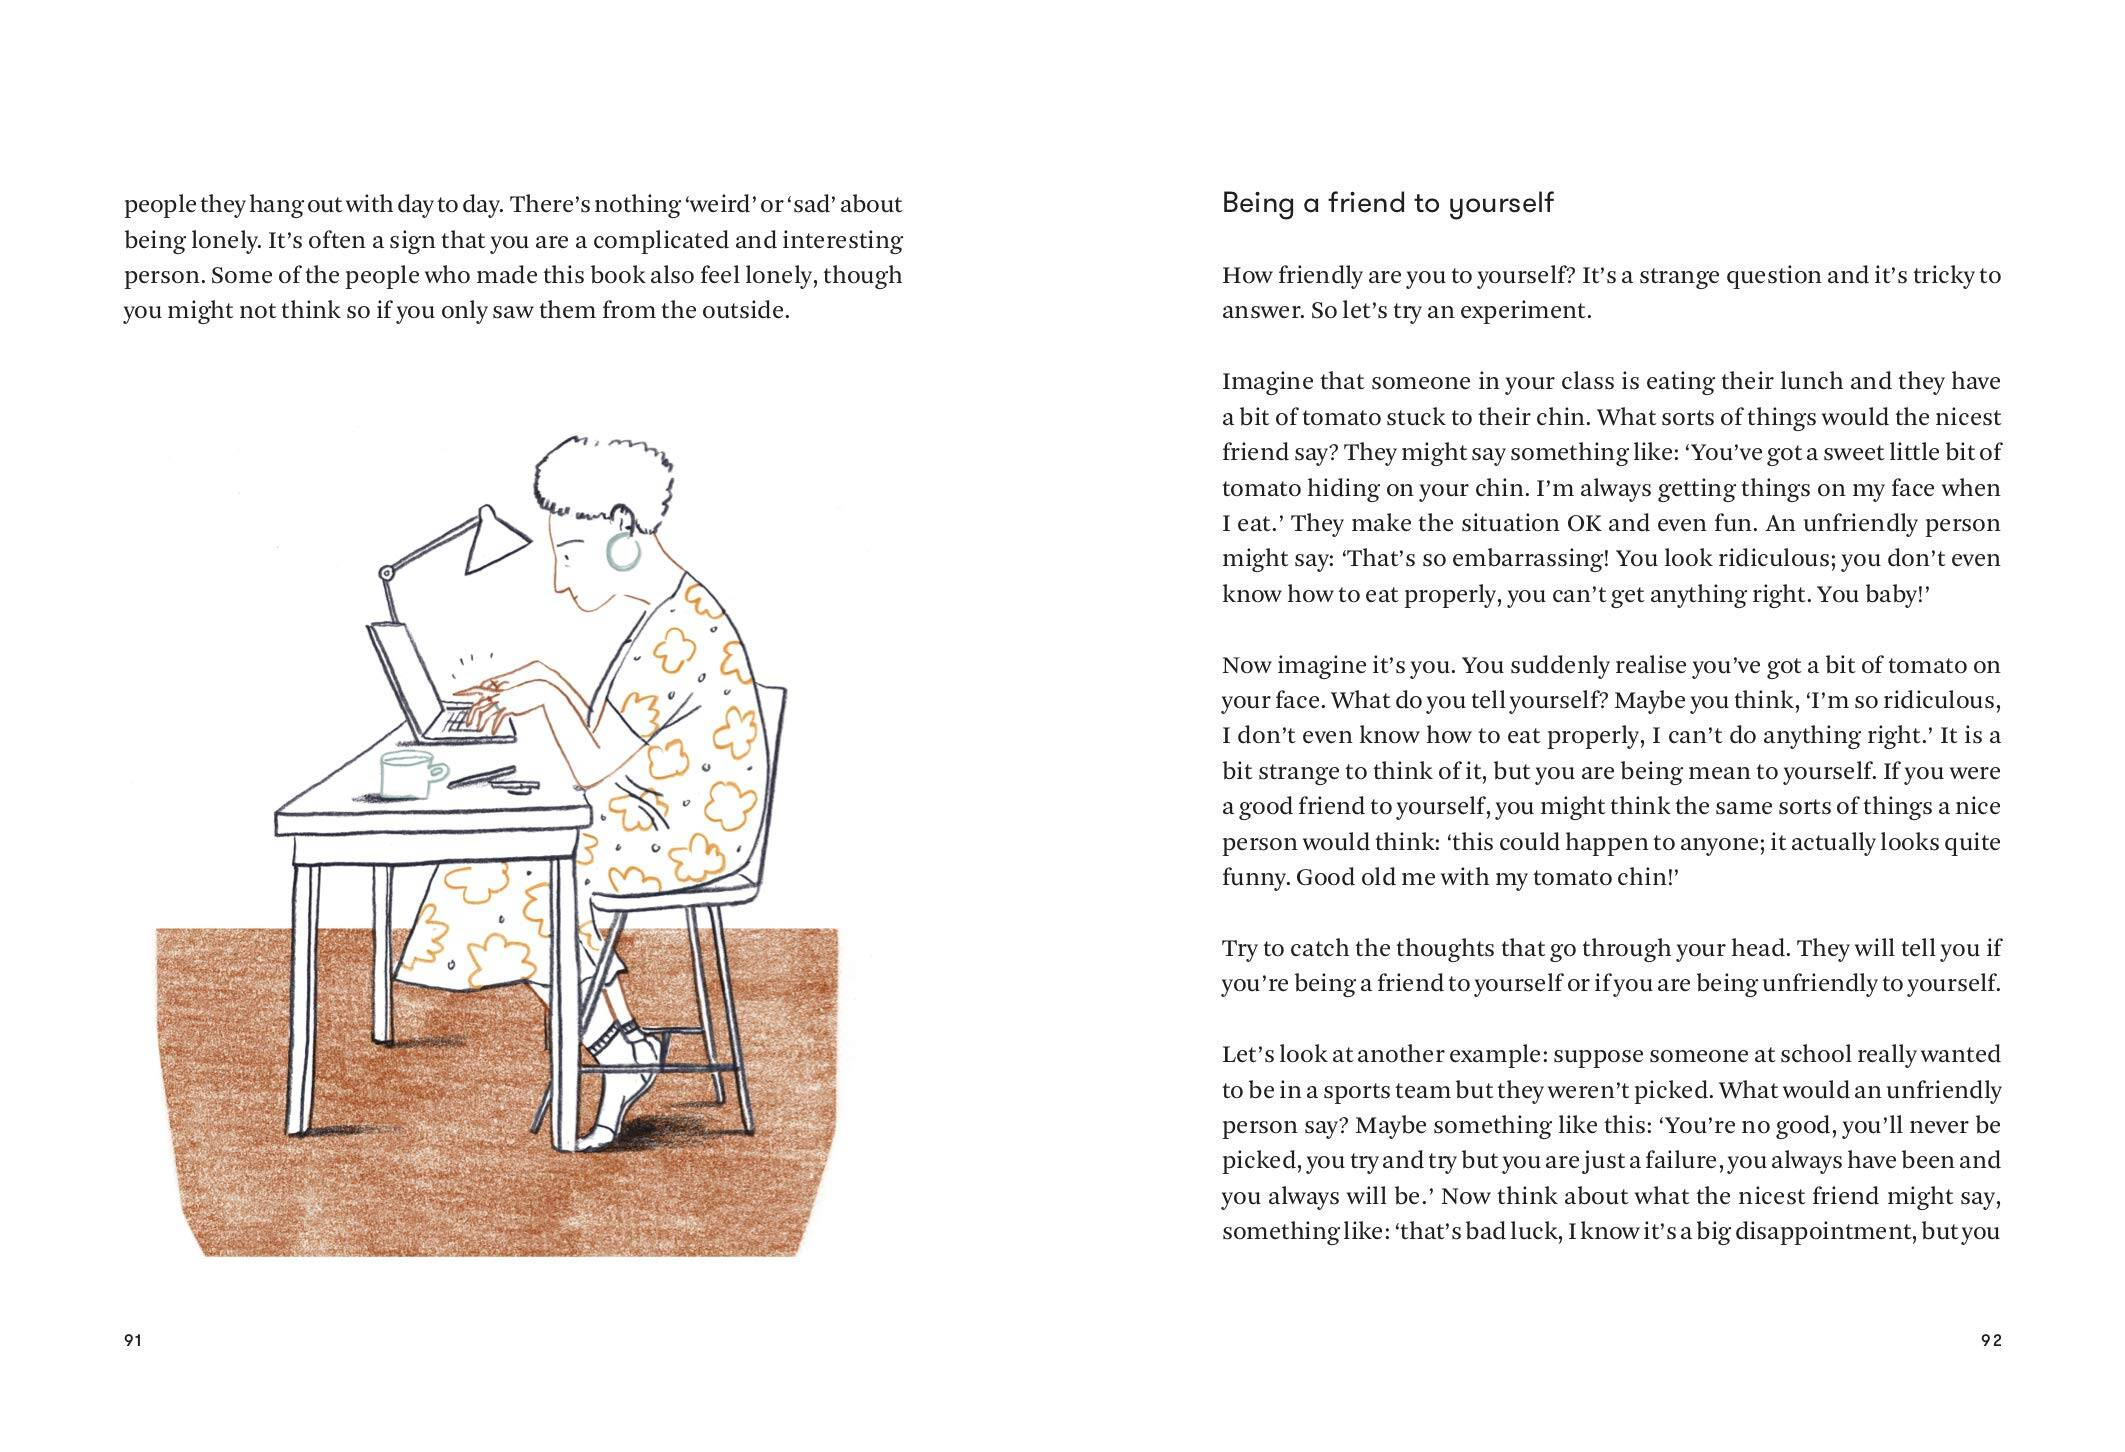 Happy, Healthy Minds by The School of Life spread 4